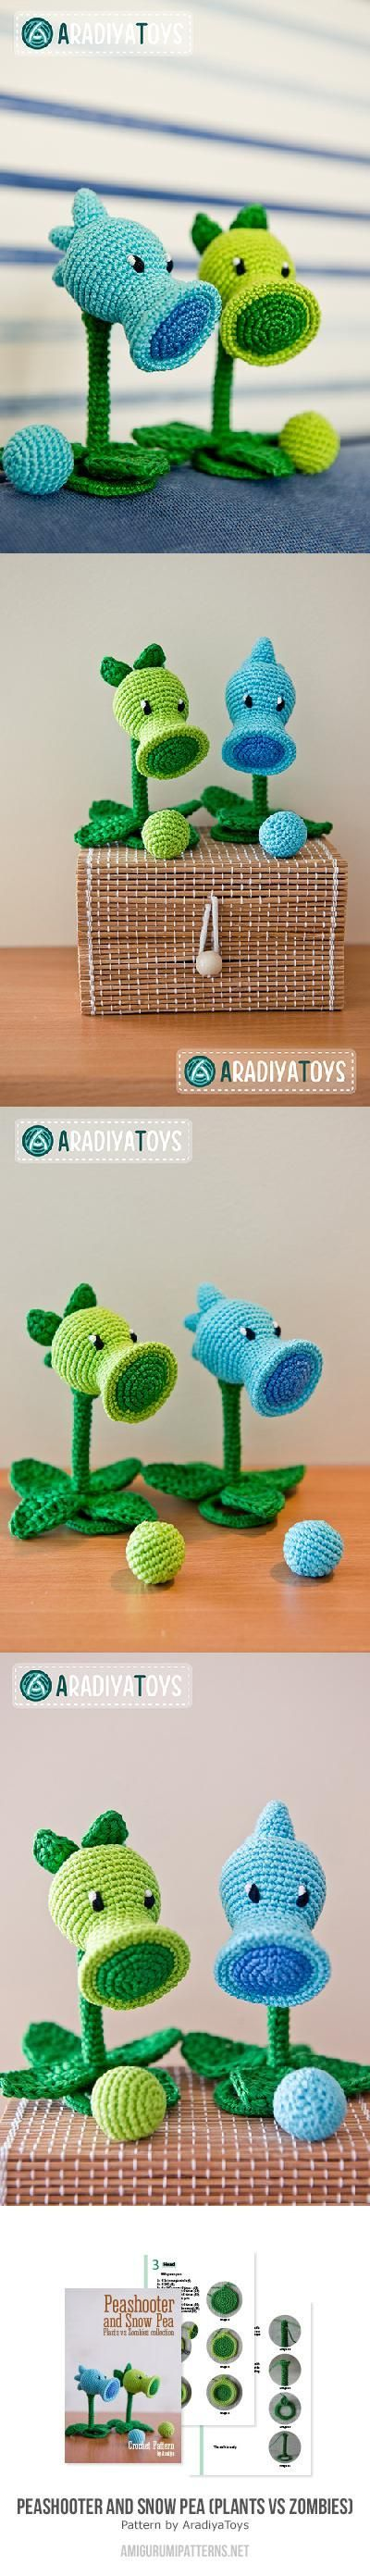 plants vs. zombies pea shooters. Found at Amigurumipatterns.net cost $2.99